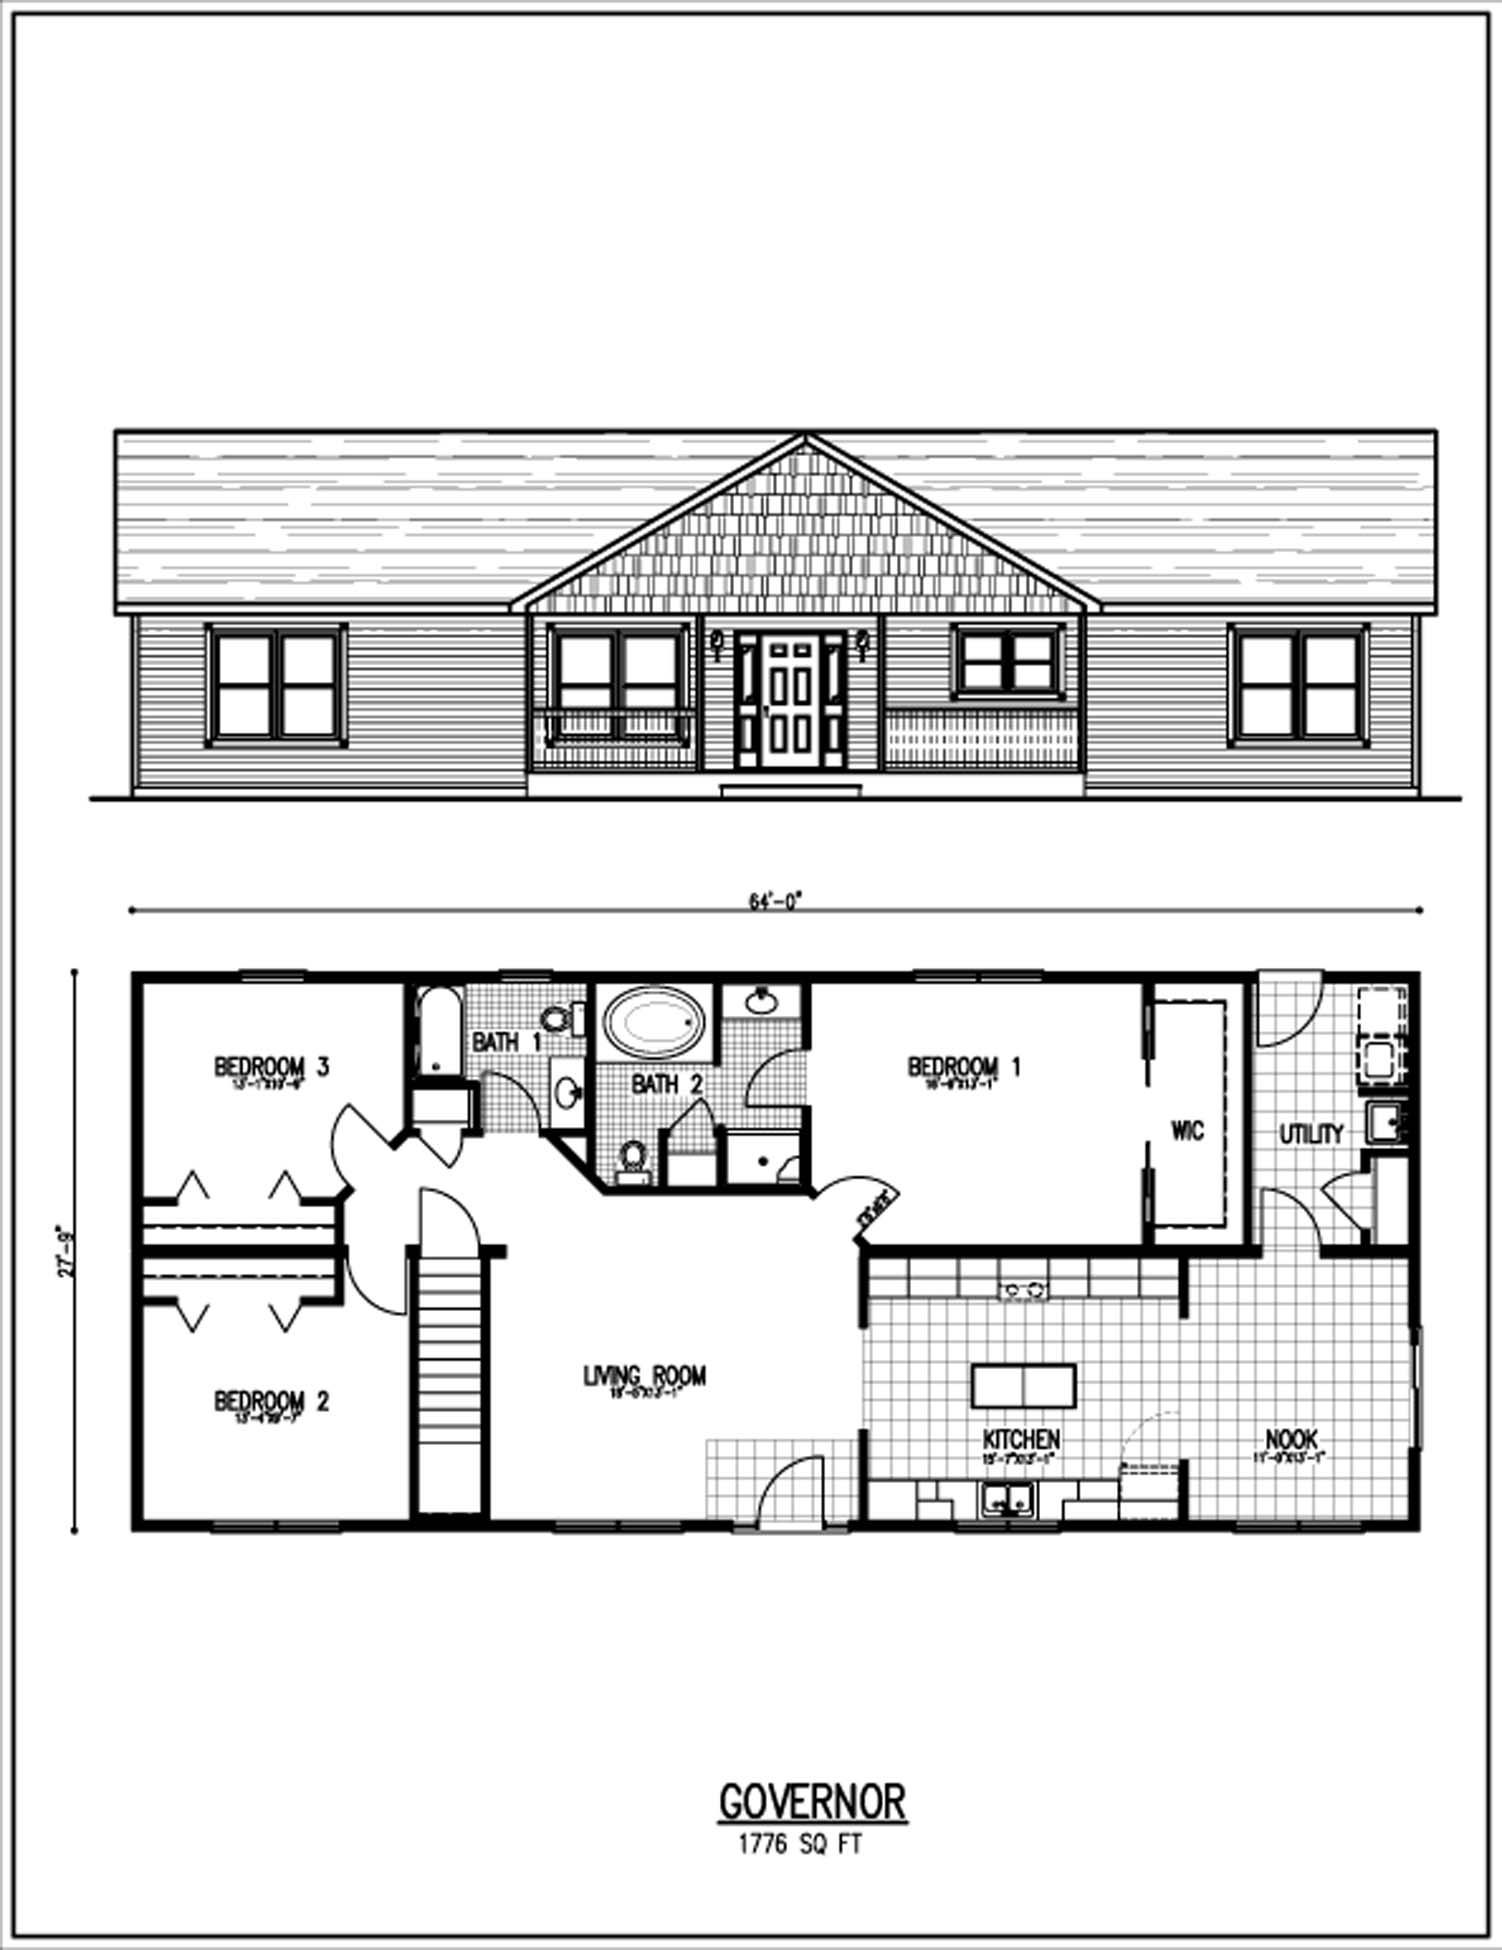 Floor plans by shawam082498 on pinterest floor plans for Popular ranch floor plans